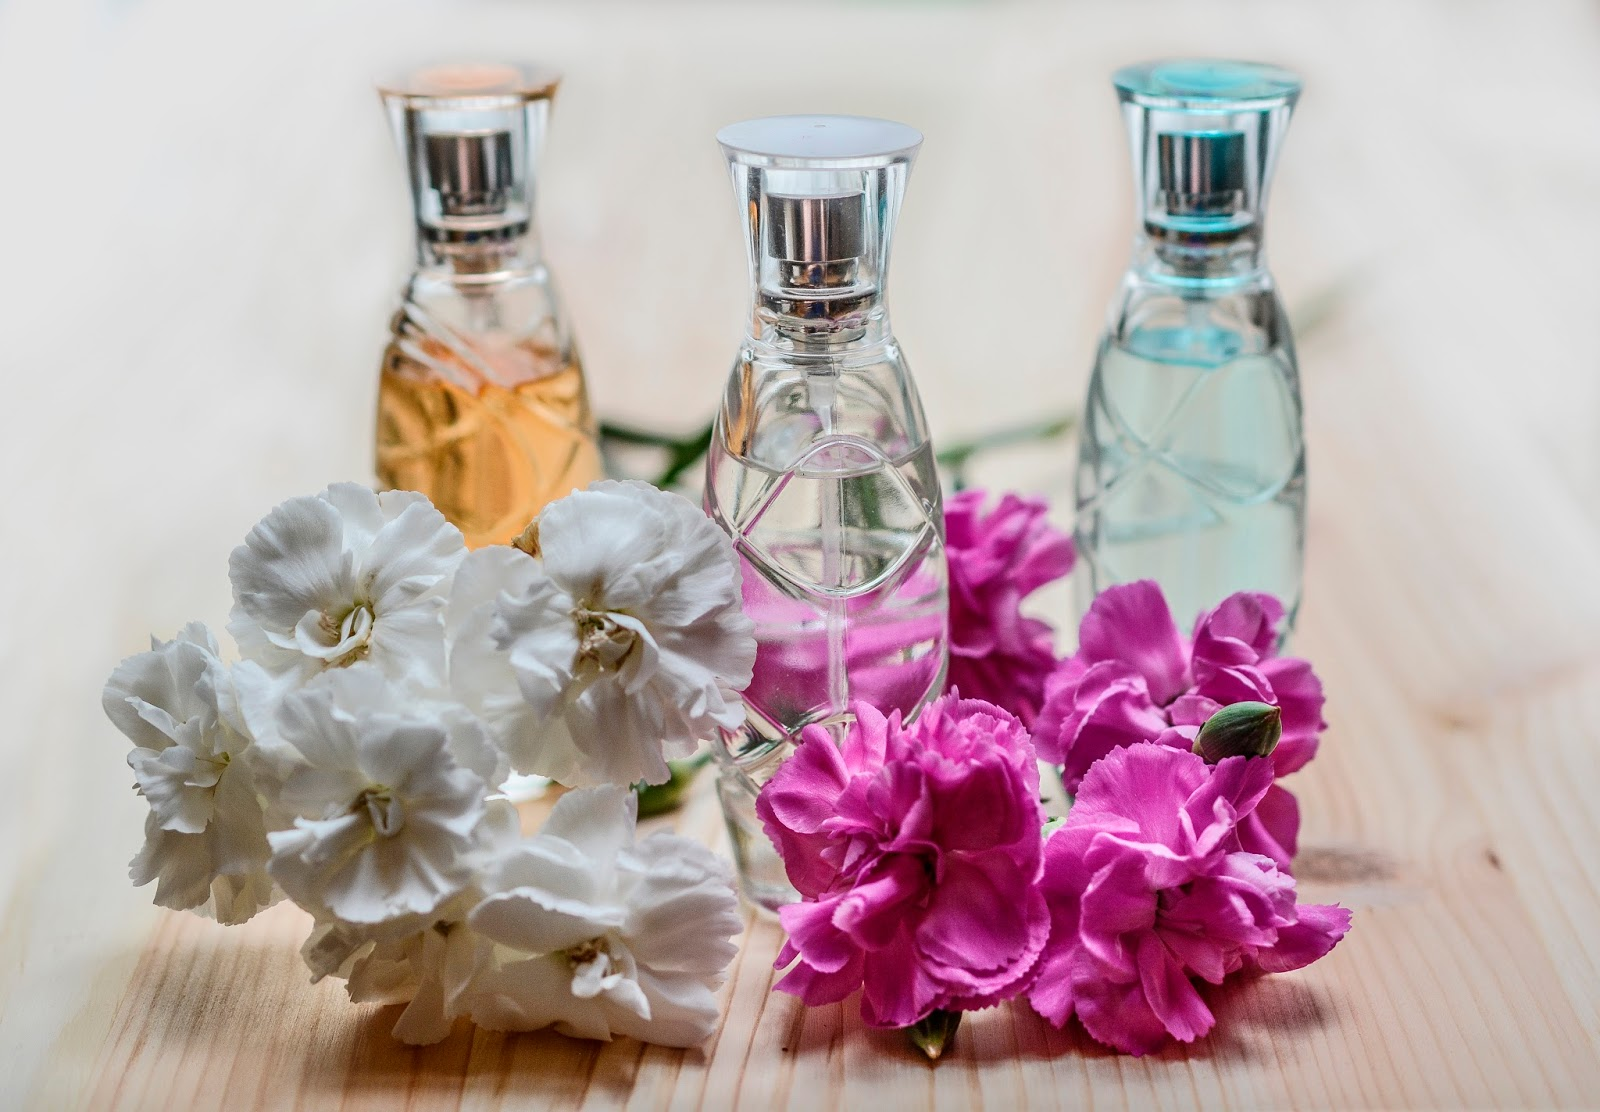 Image showing perfume bottles to illustrate article for National Fragrance Day 2017 on Is This Mutton?